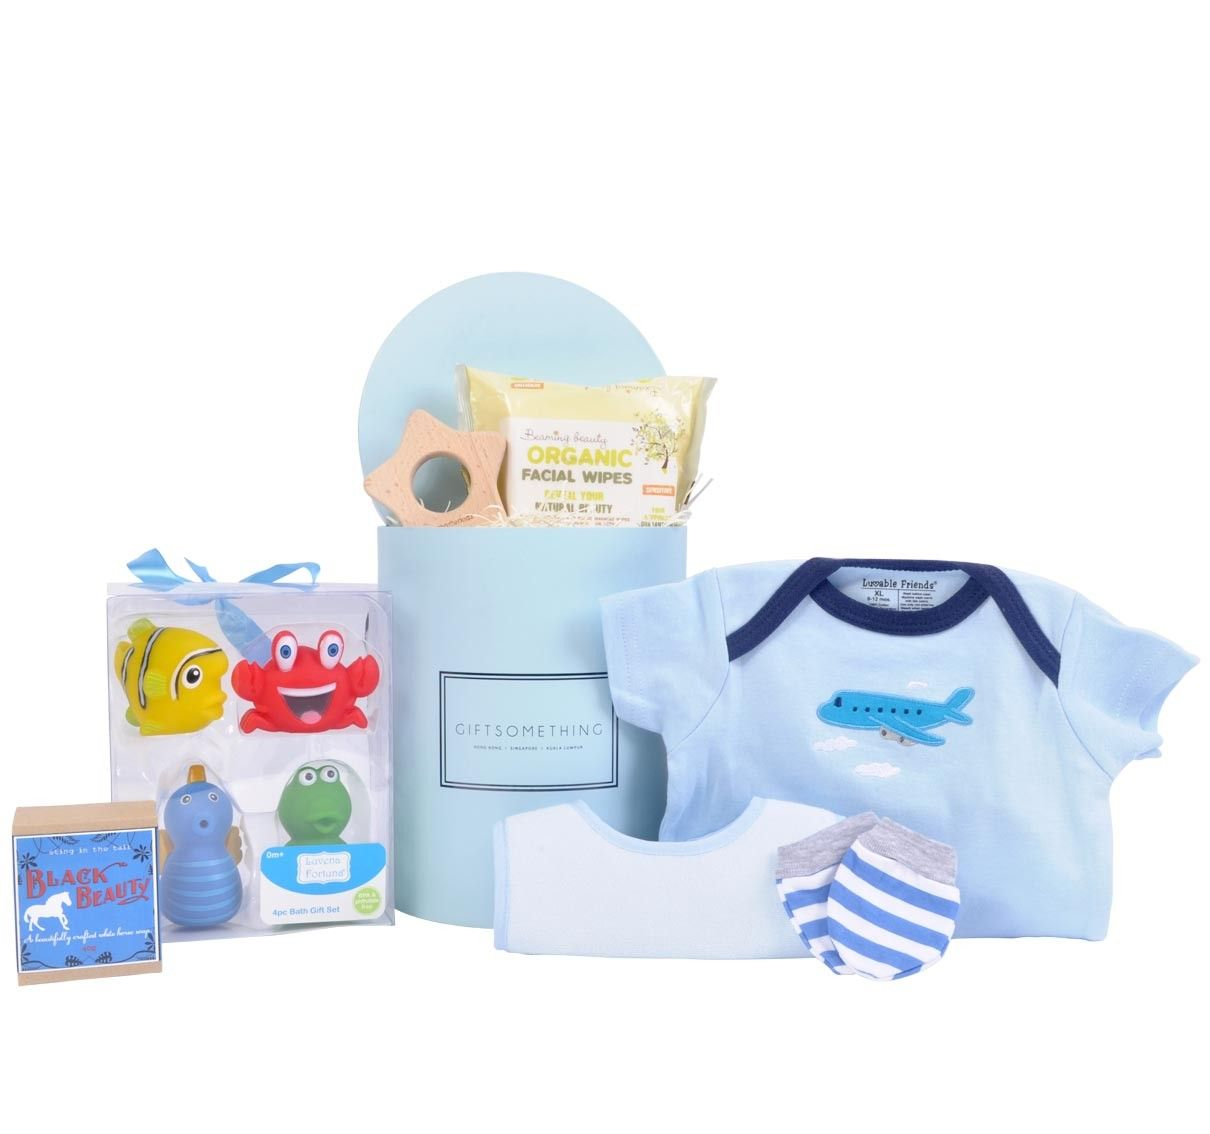 Bathtime Delight Gift Box for Baby Boy | Baby Hampers | Pinterest ...